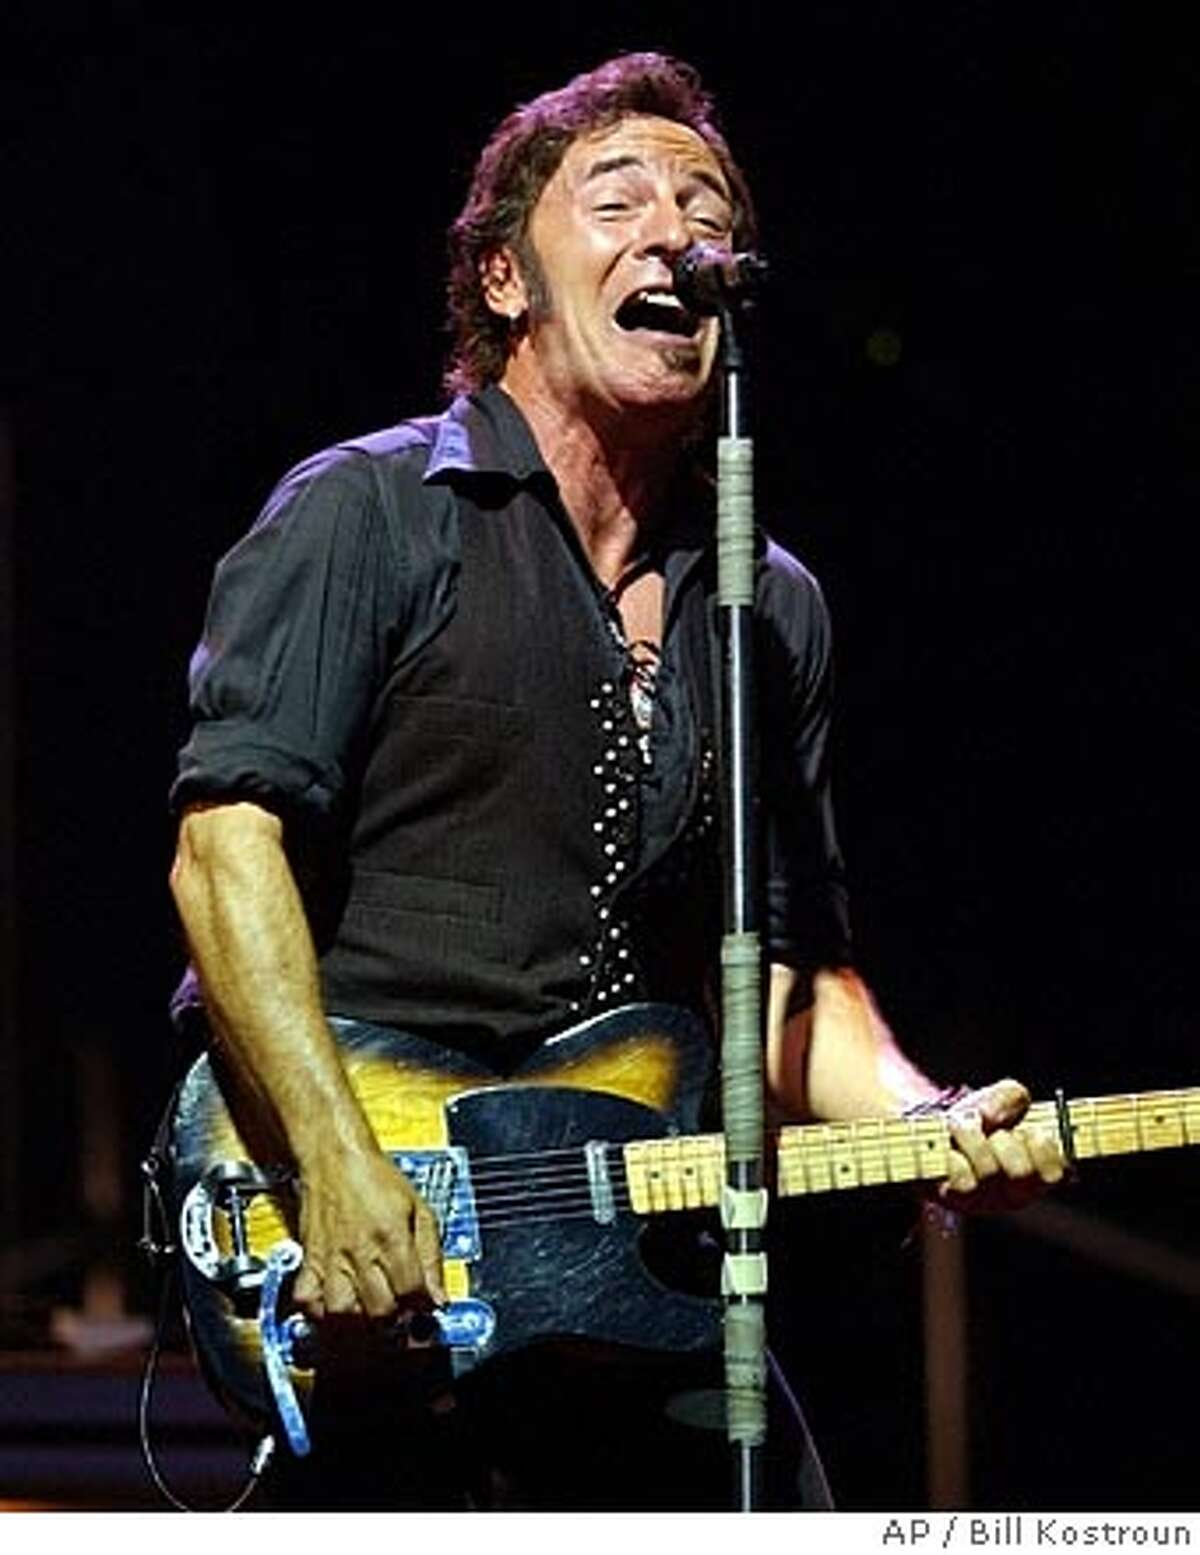 **FILE**Bruce Springsteen sings during the first of 10 sold-out shows on July 15, 2003, at Giants Stadium in East Rutherford, N.J. The New Jersey Sports and Exposition Authority's profits grew by about $14 million this year, thanks in large part to Bruce Springsteen. The authority's president, said Wednesday Dec.17, 2003, that its profit had grown from $34.4 million in 2003 to $48 million this year. He said the boost was mostly due to 10 sold-out shows that Springsteen and the E Street Band played a Giants Stadium in July and August. The profit is expected to drop to about $37.9 million next year-- unless Springsteen unexpectedly returns to Giants Stadium.(AP Photo/Bill Kostroun) Bruce Springsteen, shown at Giants Stadium in July, made $115.9 million. Ran on: 06-25-2004 The Boss says he wont play. A JULY 15 2003 FILE PHOTO